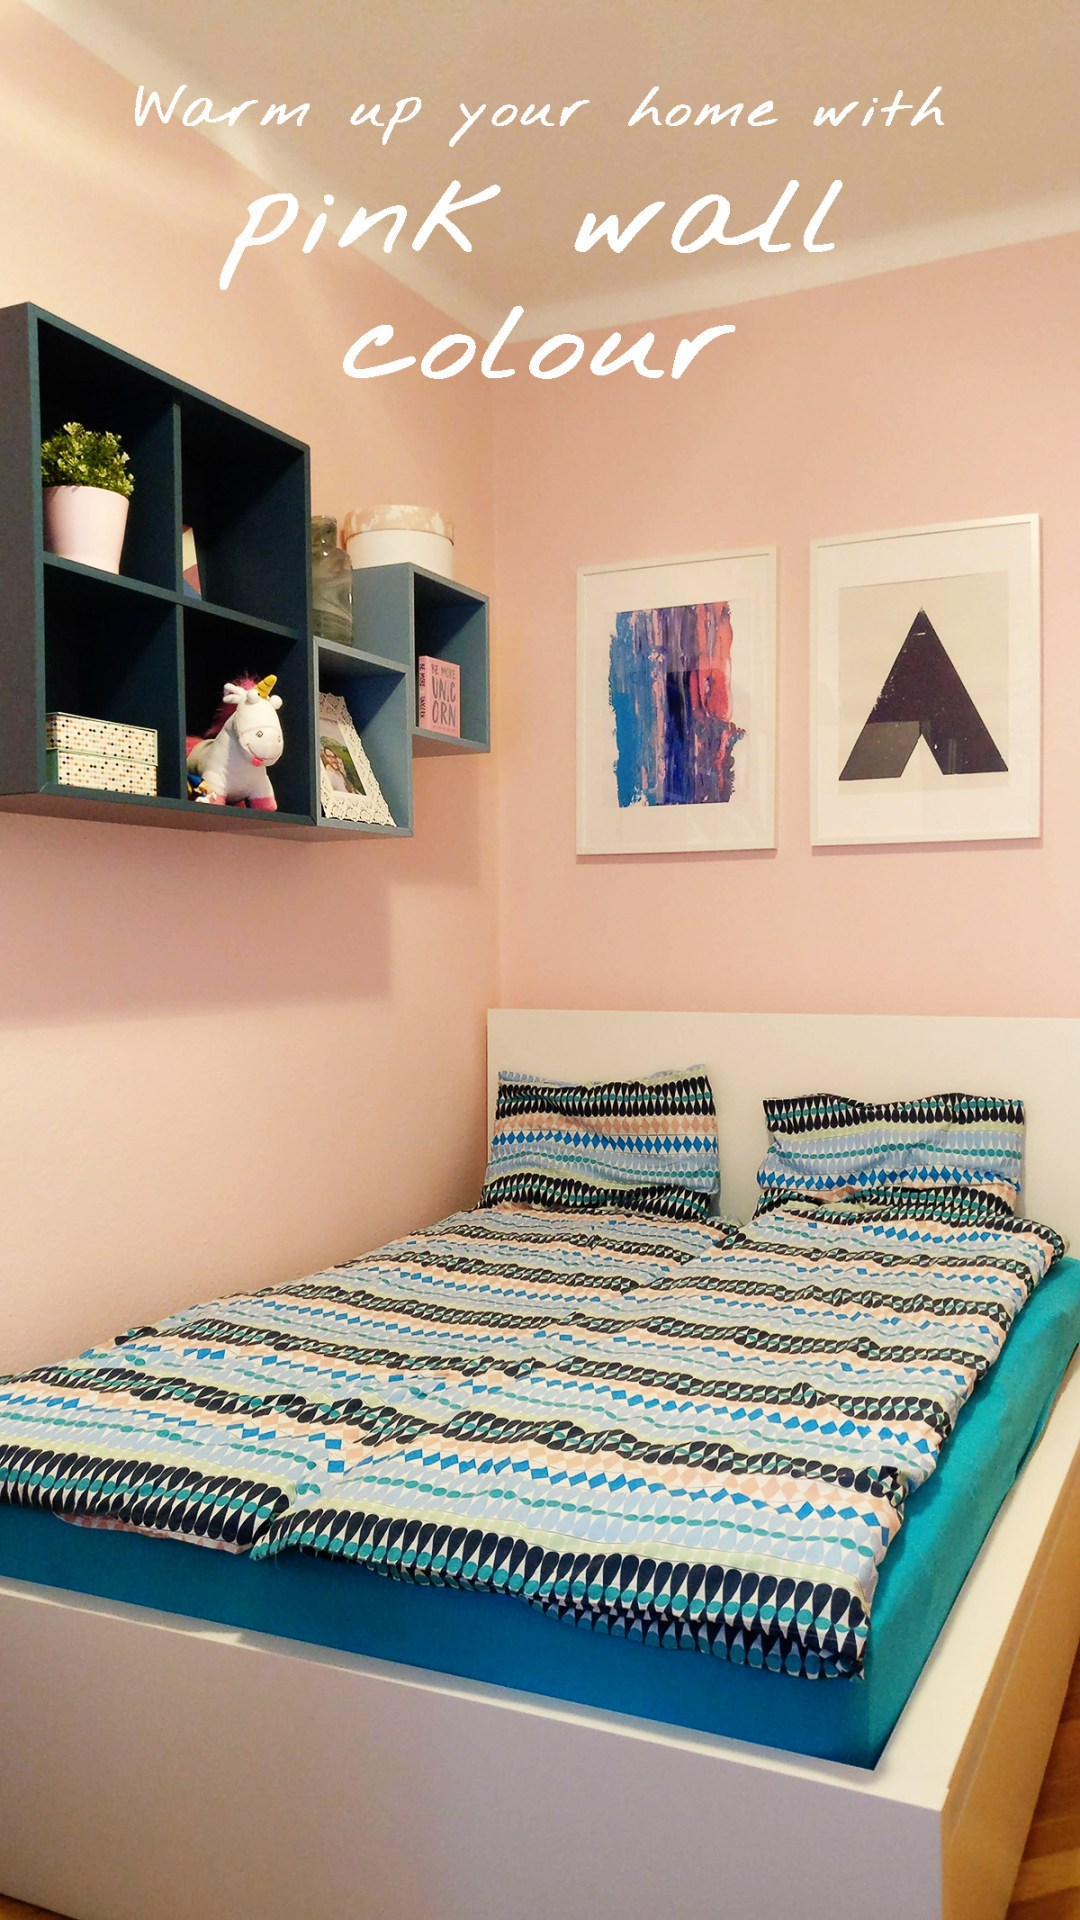 Warm up your home with pink wall colour | Aliz's Wonderland